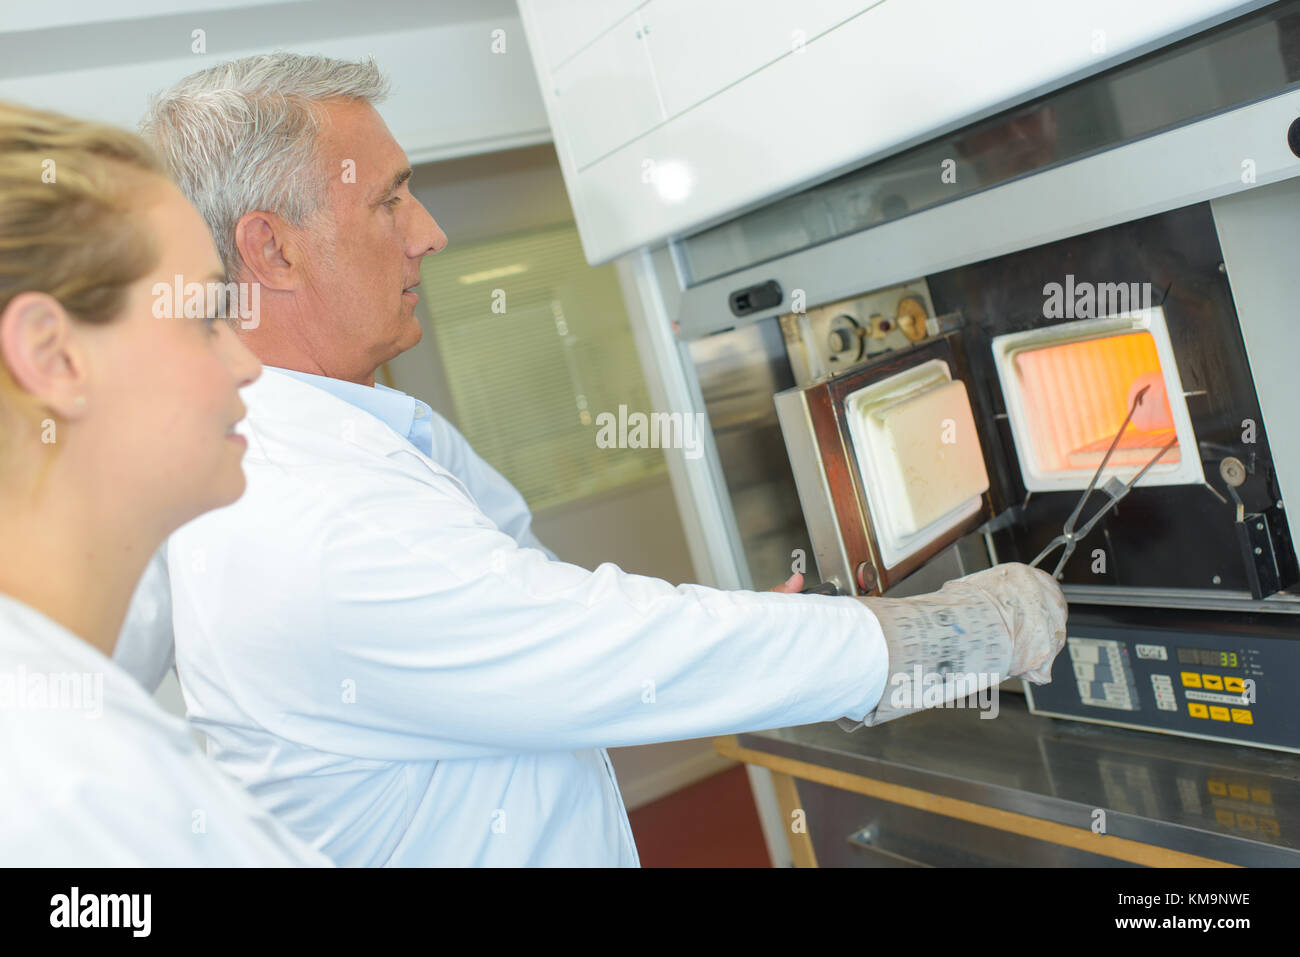 Man in white coat removing item from oven - Stock Image